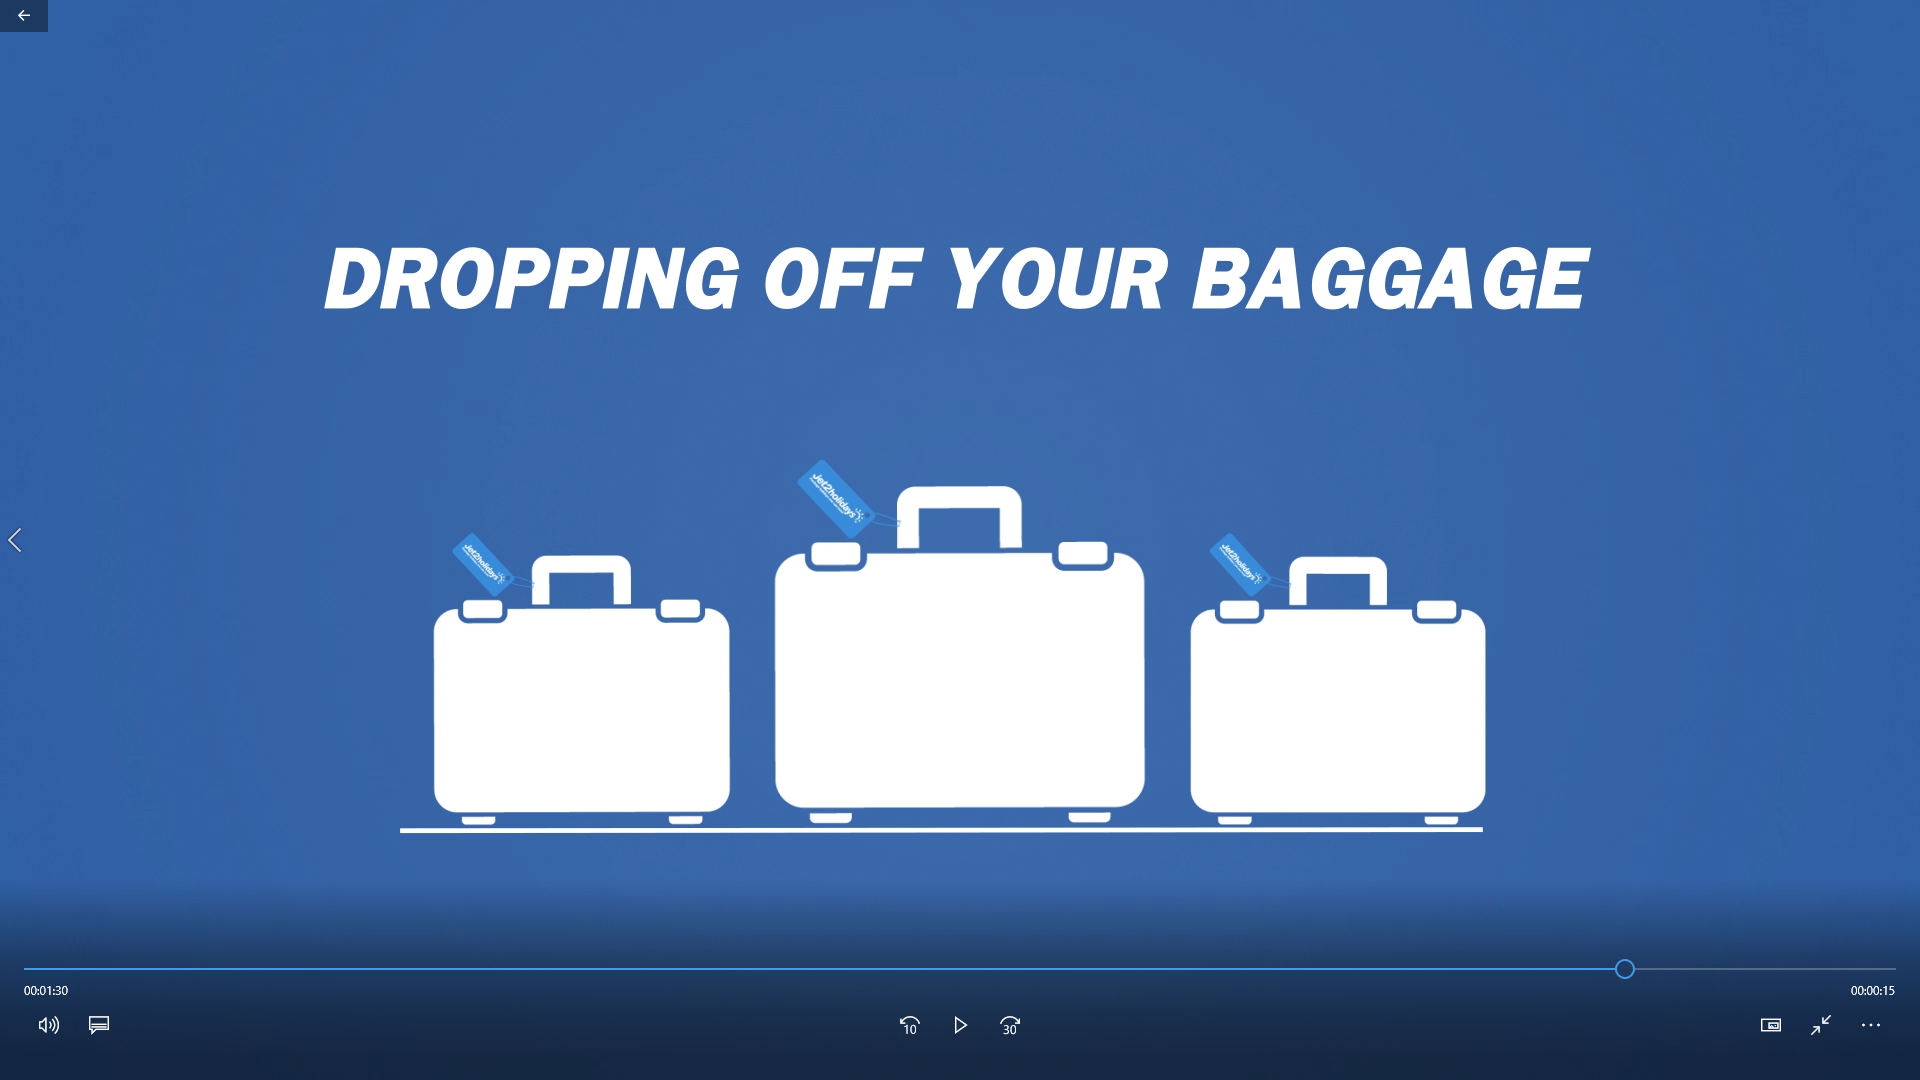 Jet2 tips on how to drop off your baggage